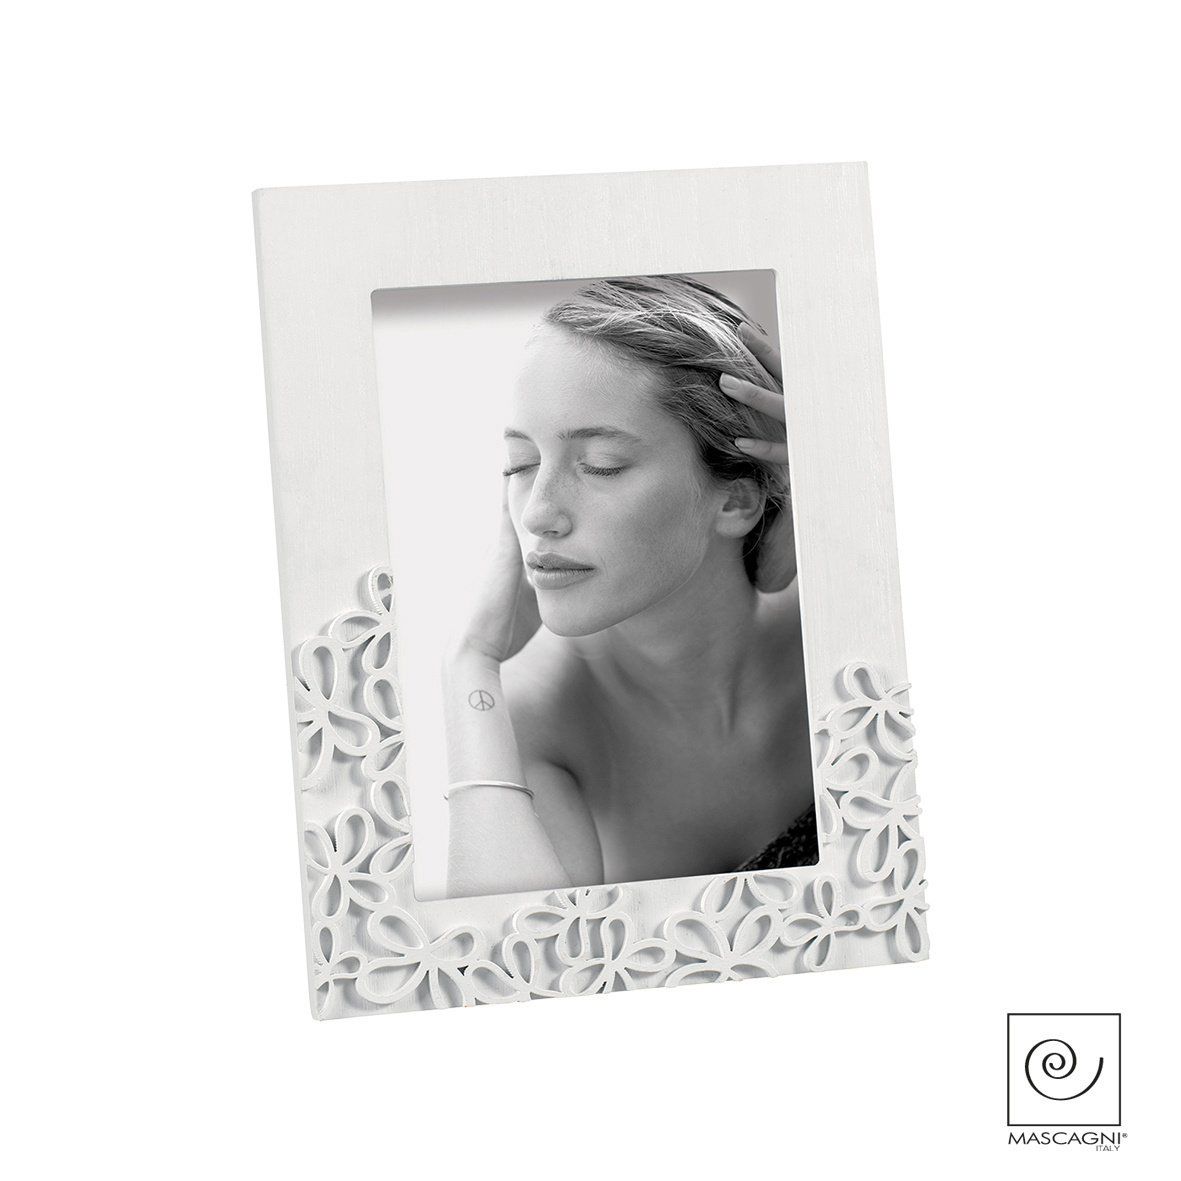 Art Mascagni A661 PHOTO FRAME 13X18 - COL. WHITE